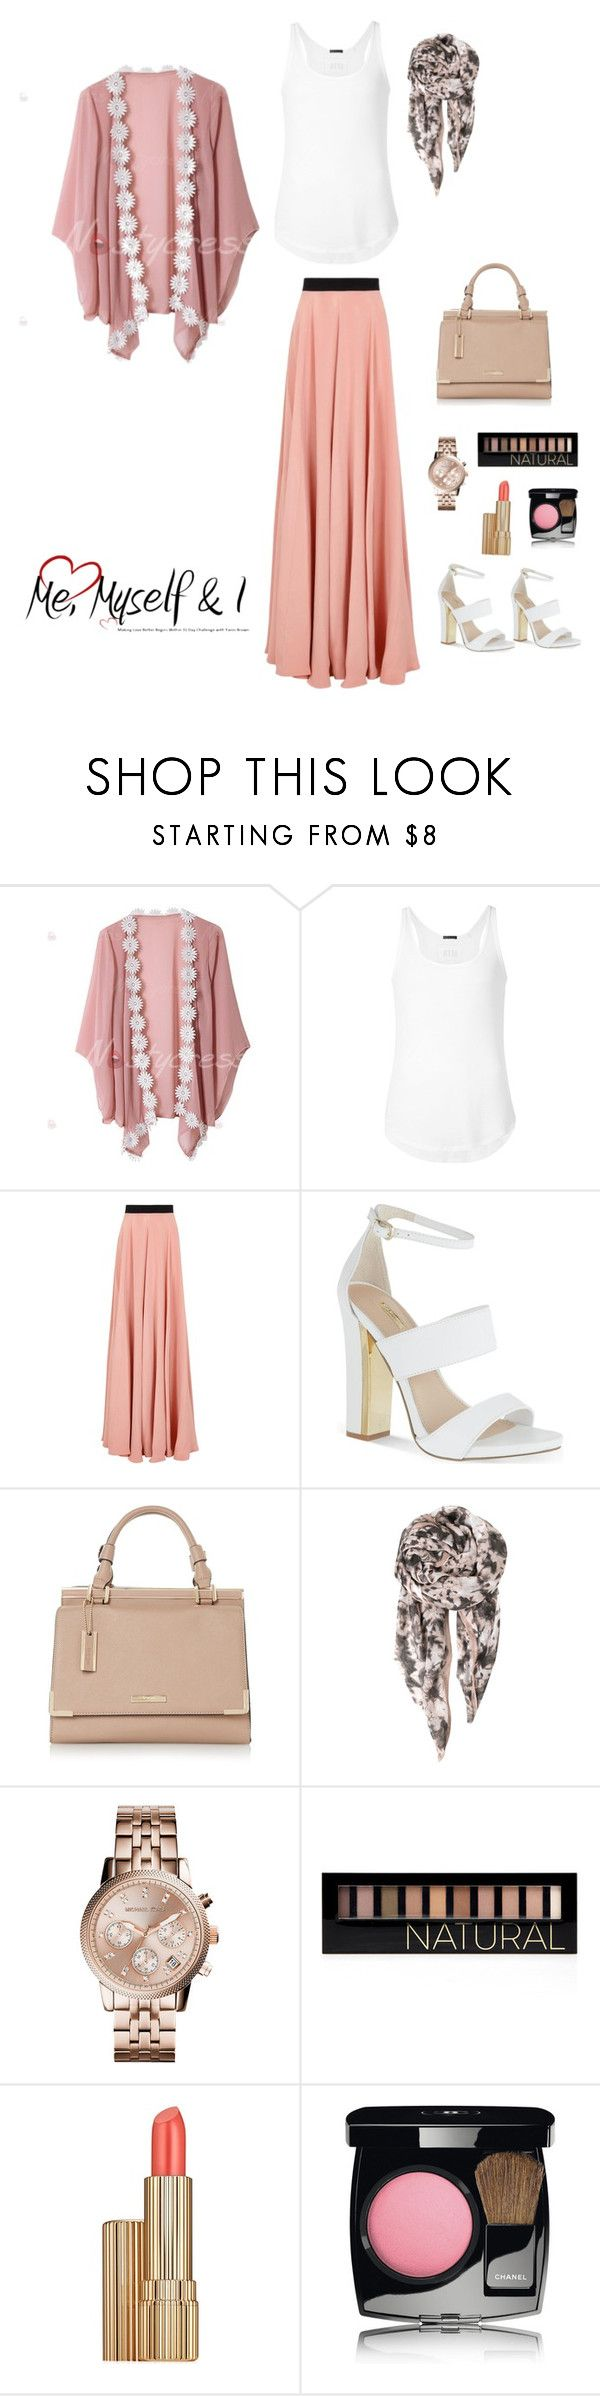 """""""simple look for eid"""" by ms-jaramaya ❤ liked on Polyvore featuring ATM by Anthony Thomas Melillo, Roksanda, Carvela, Handle, BeckSöndergaard, Michael Kors, Forever 21, Estée Lauder and Chanel"""